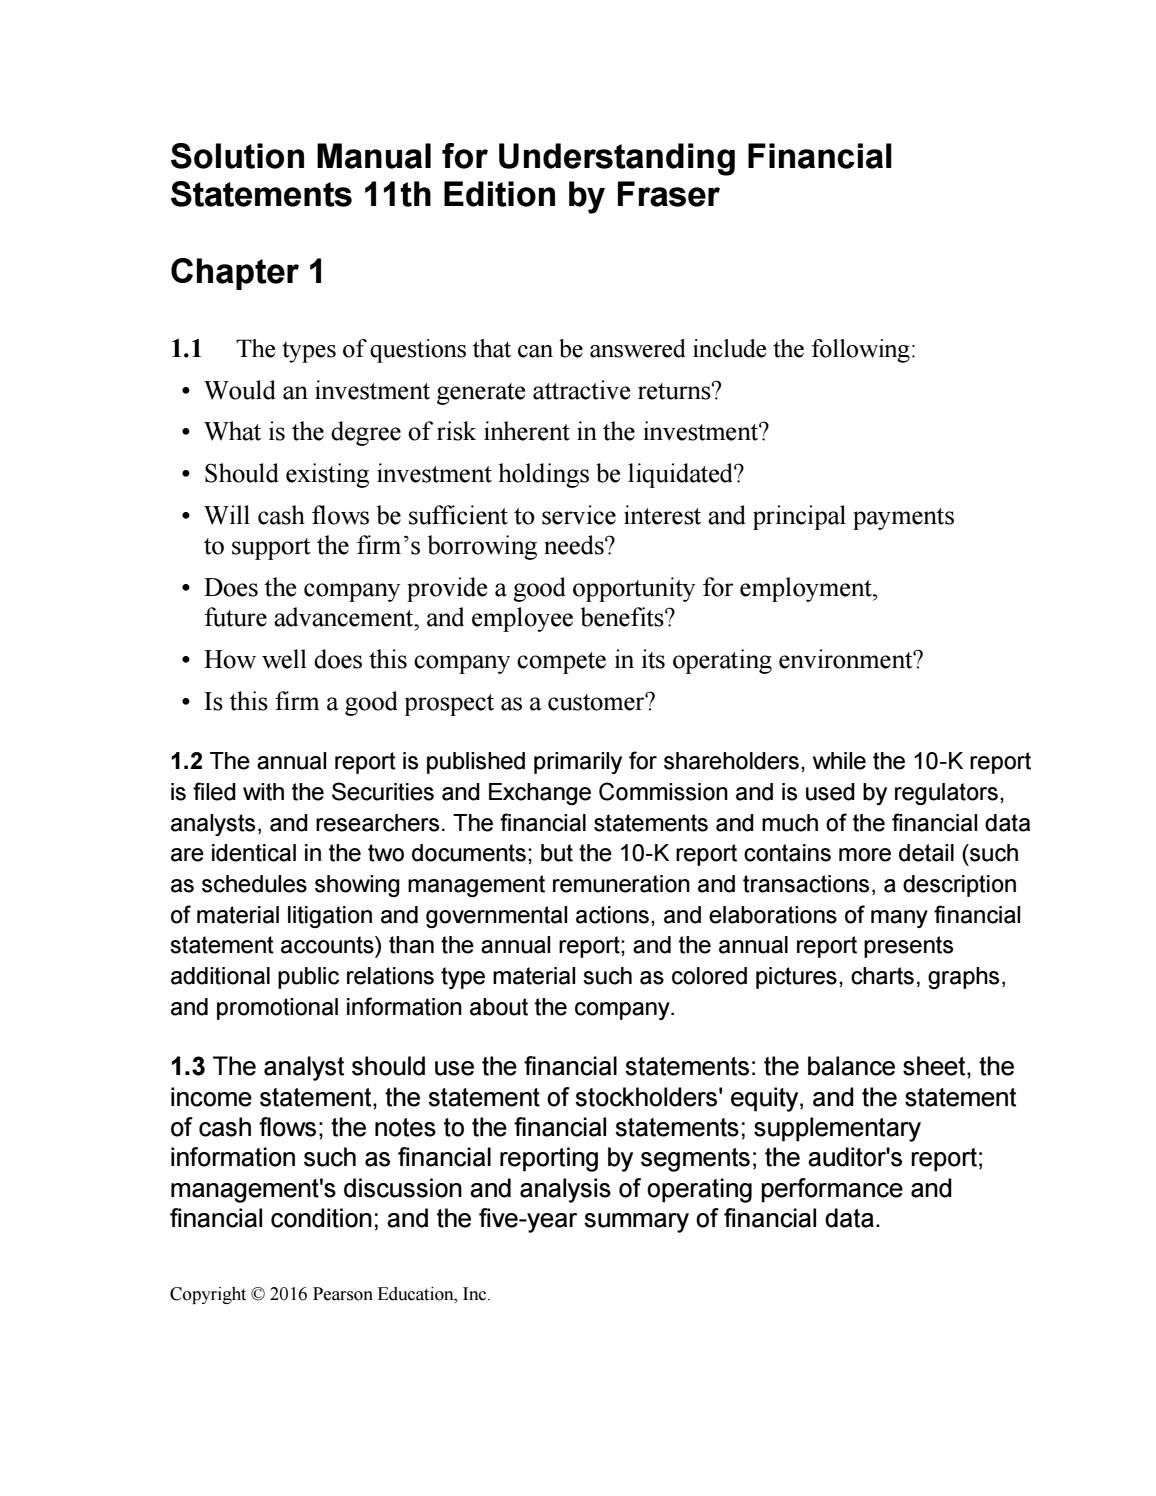 Link full download solution manual for understanding financial statements 11th  edition by fraser Financial Statement,